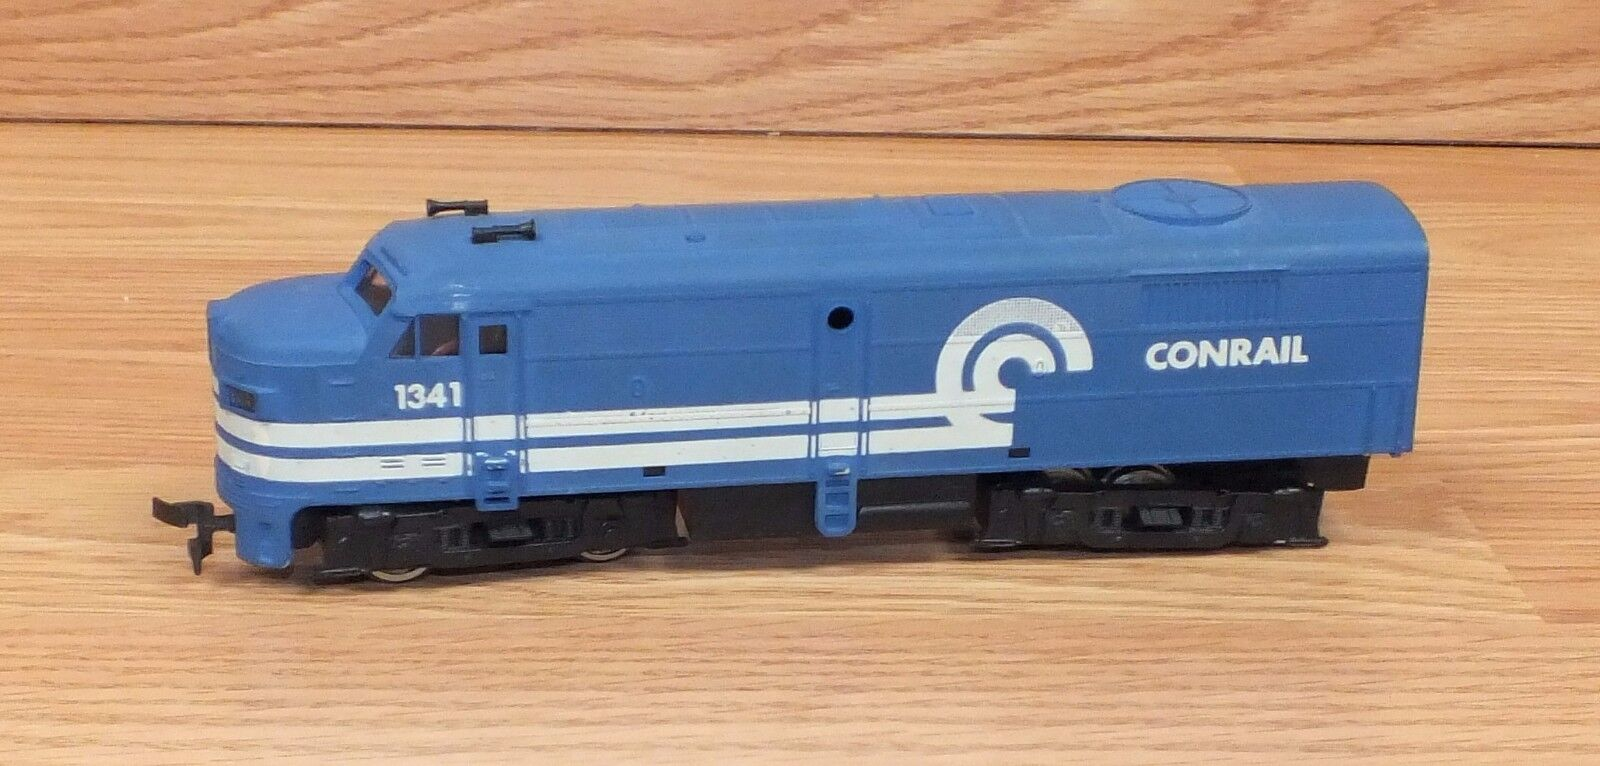 Genuine Conrail (1341) HO Scale bluee 7  (inch) Train Engine Only READ